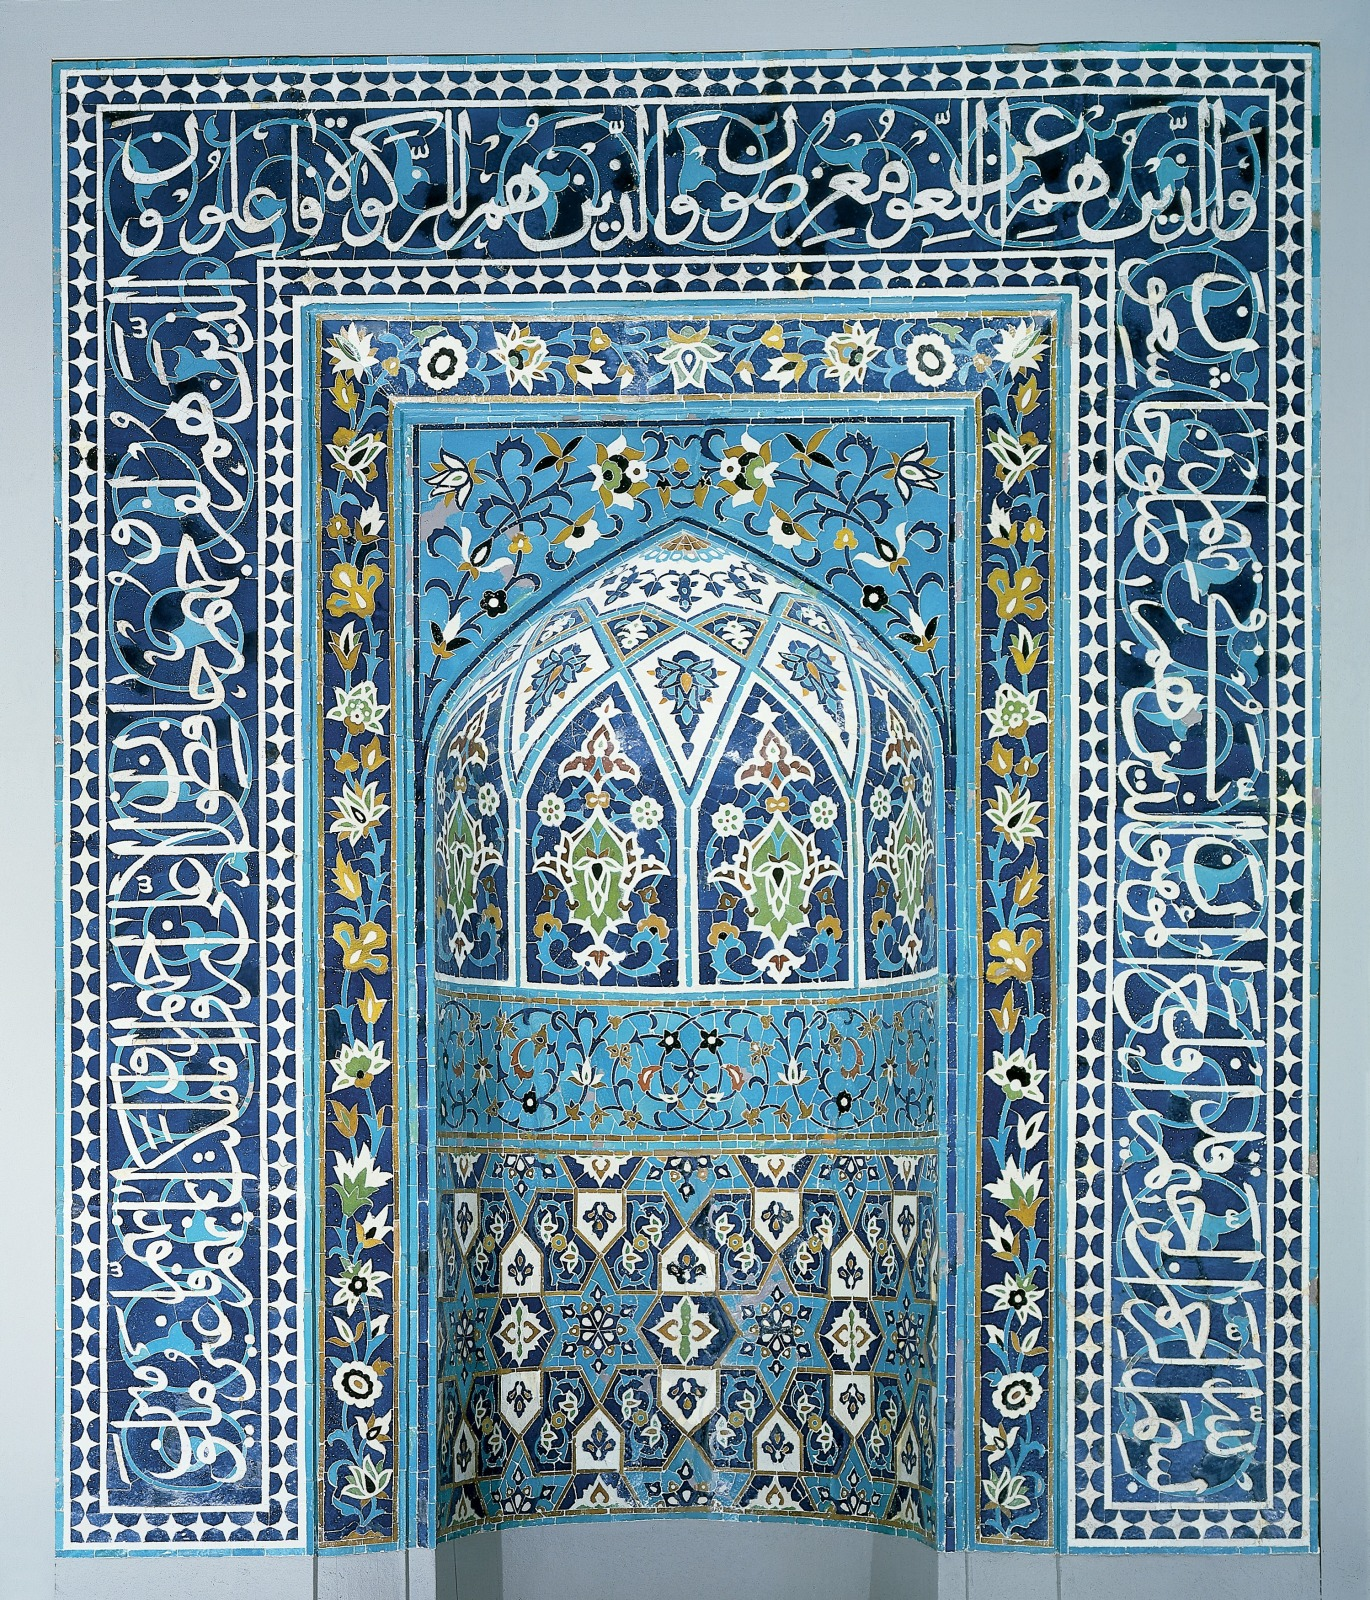 Islamic Mosaic Designs and Art